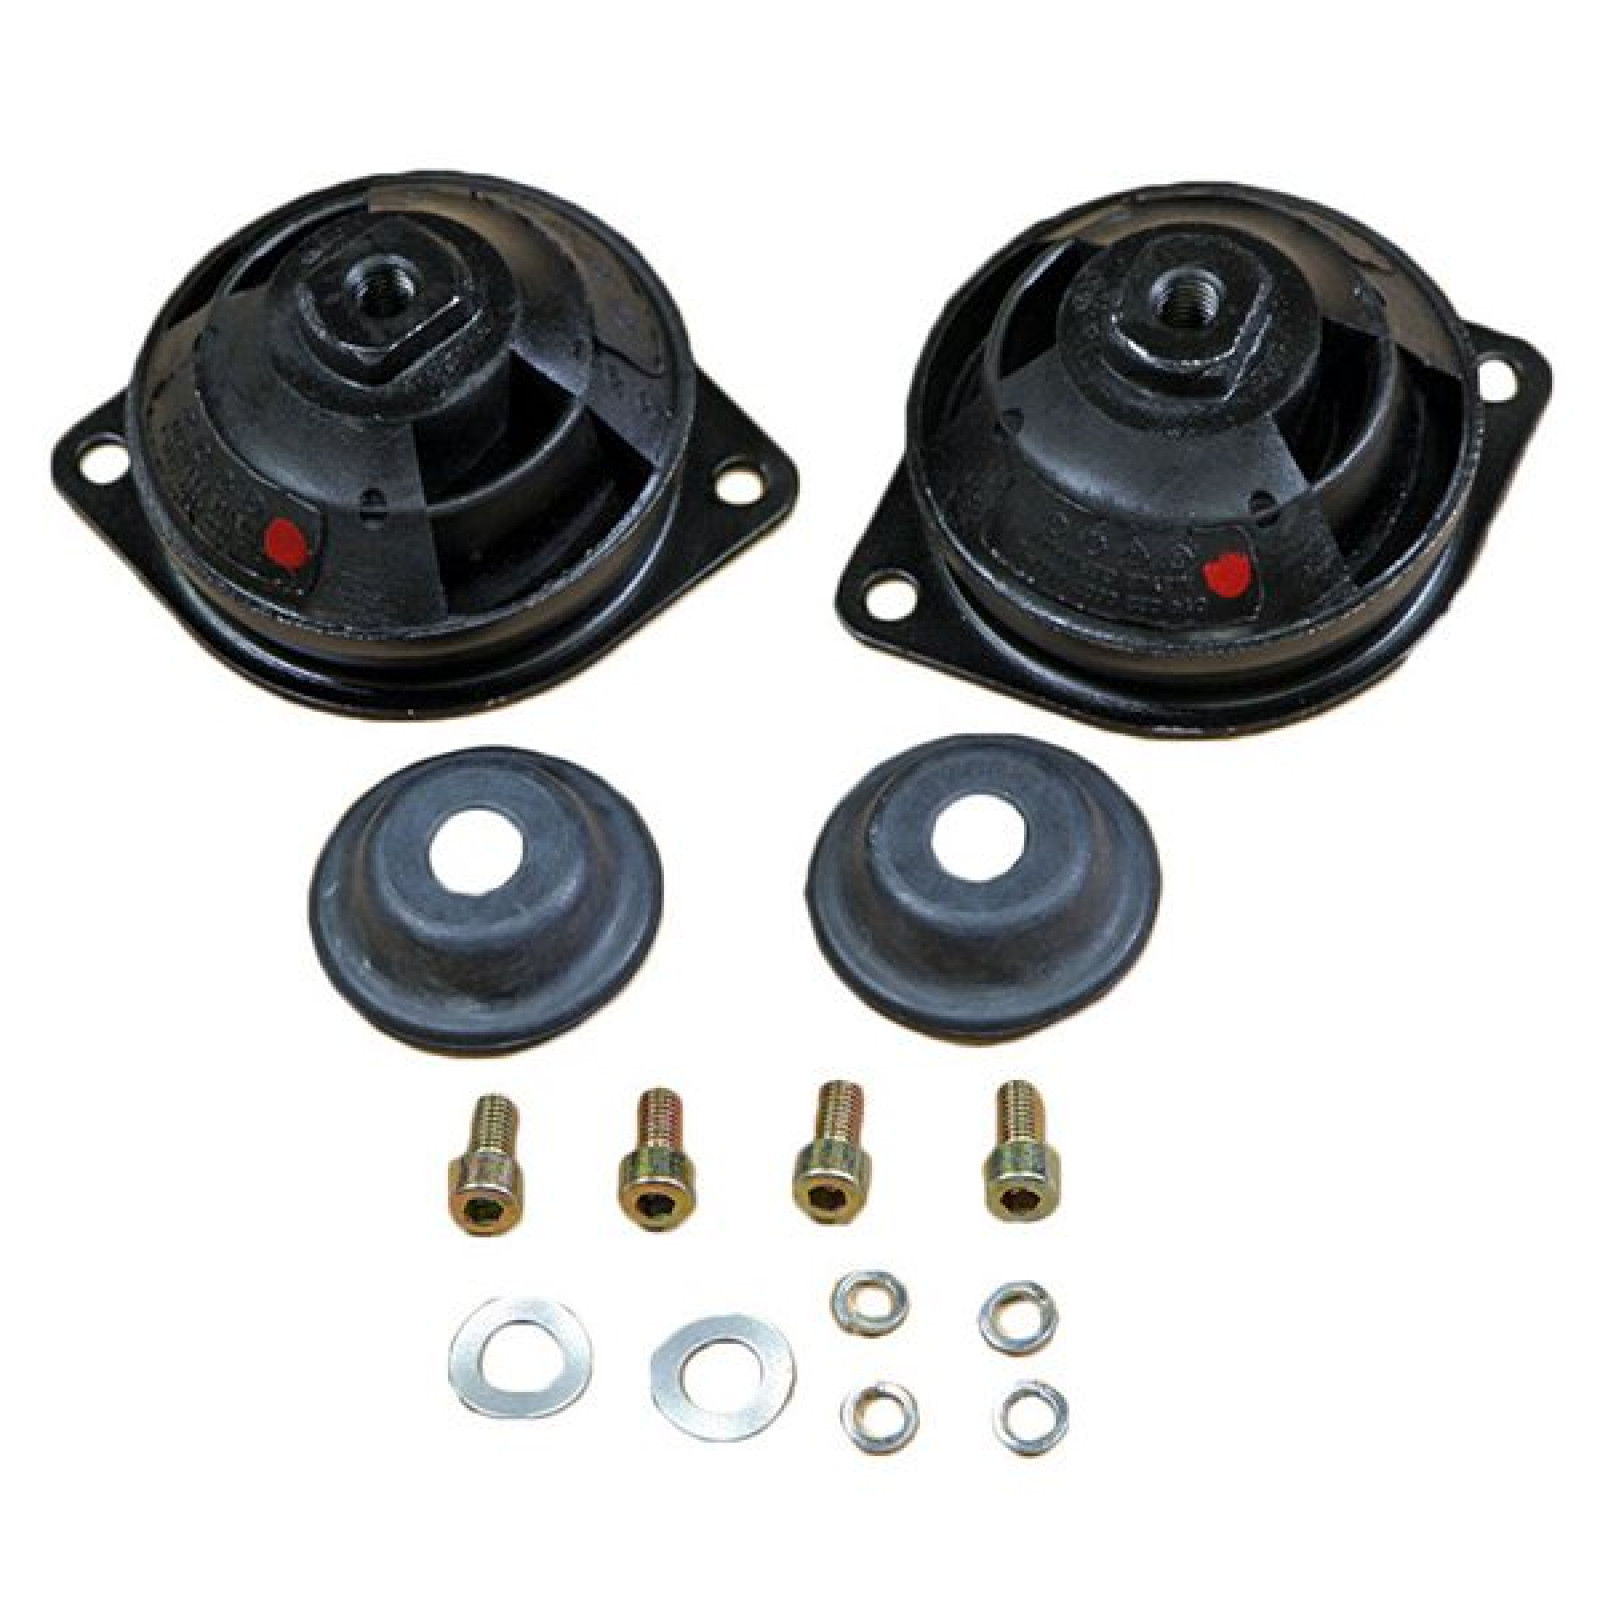 Mercedes benz w113 pagoda sl 250 280 engine mount kit for Mercedes benz motor mounts